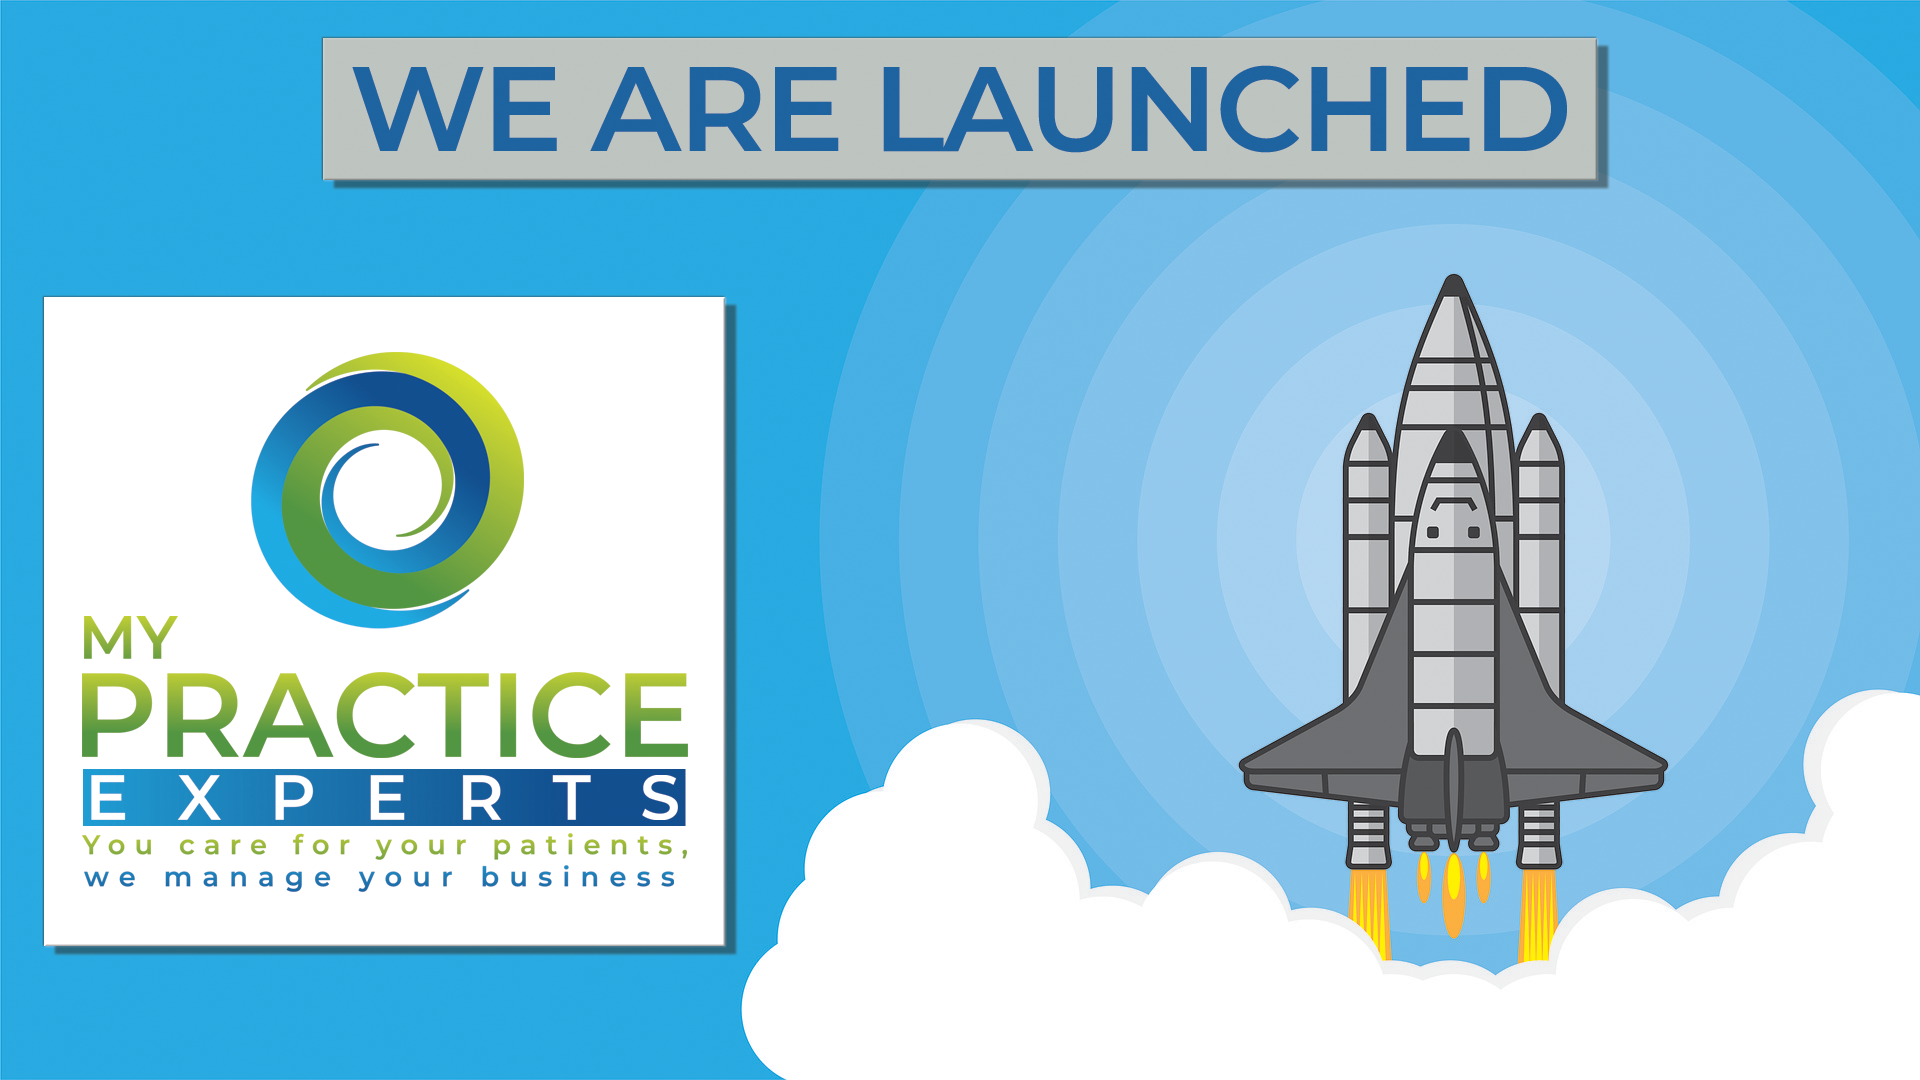 My Practice Experts Launched